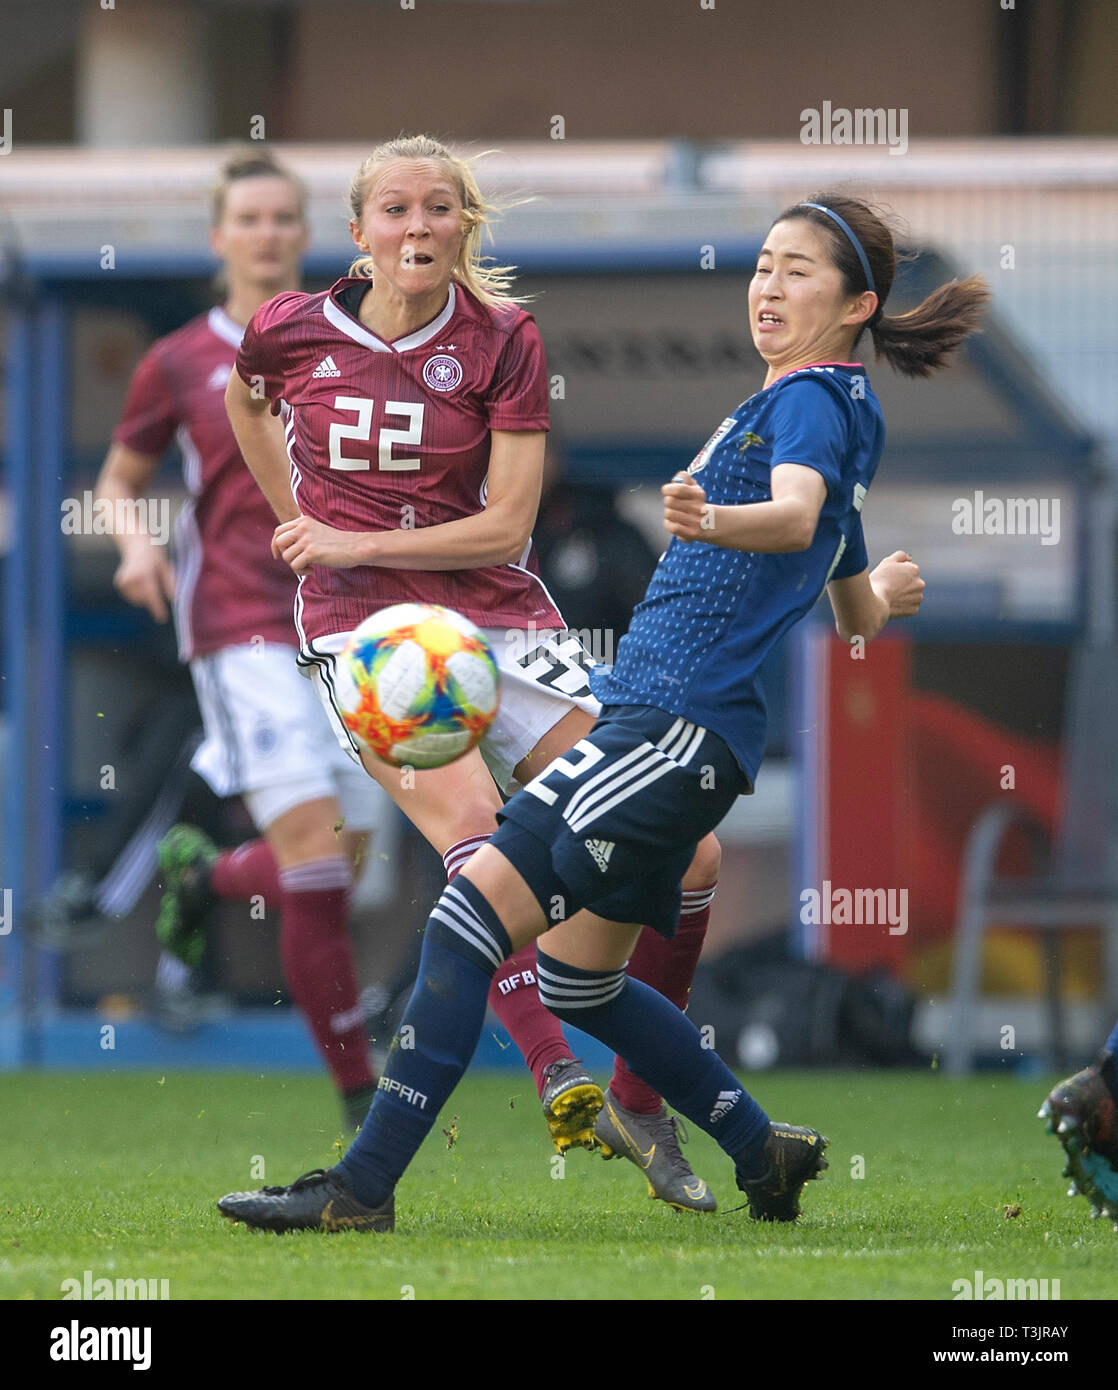 Paderborn, Germany. 09th Apr, 2019. Turid KNAAK (GER) in duels versus Risa SHIMIZU r. (JPN), Action, Soccer National Team Women Friendly Match, Germany (GER) - Japan (JPN) 2: 2, on 09/04/2019 in Paderborn / Germany. | Usage worldwide Credit: dpa picture alliance/Alamy Live News - Stock Image